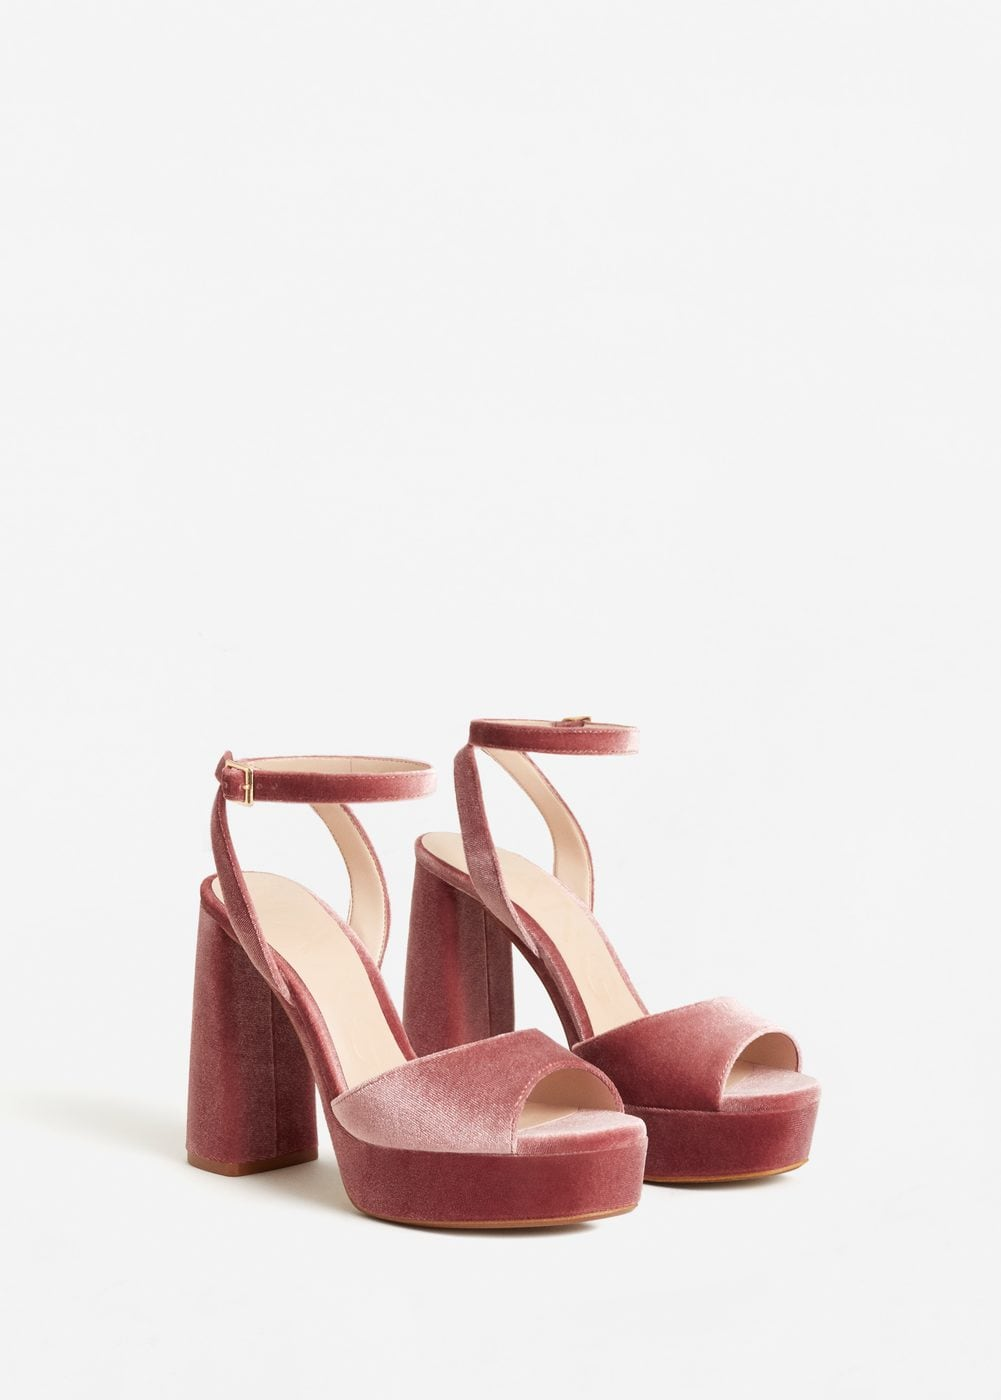 17. sandales-talons-carre-velours-rose-chaussures-mariee